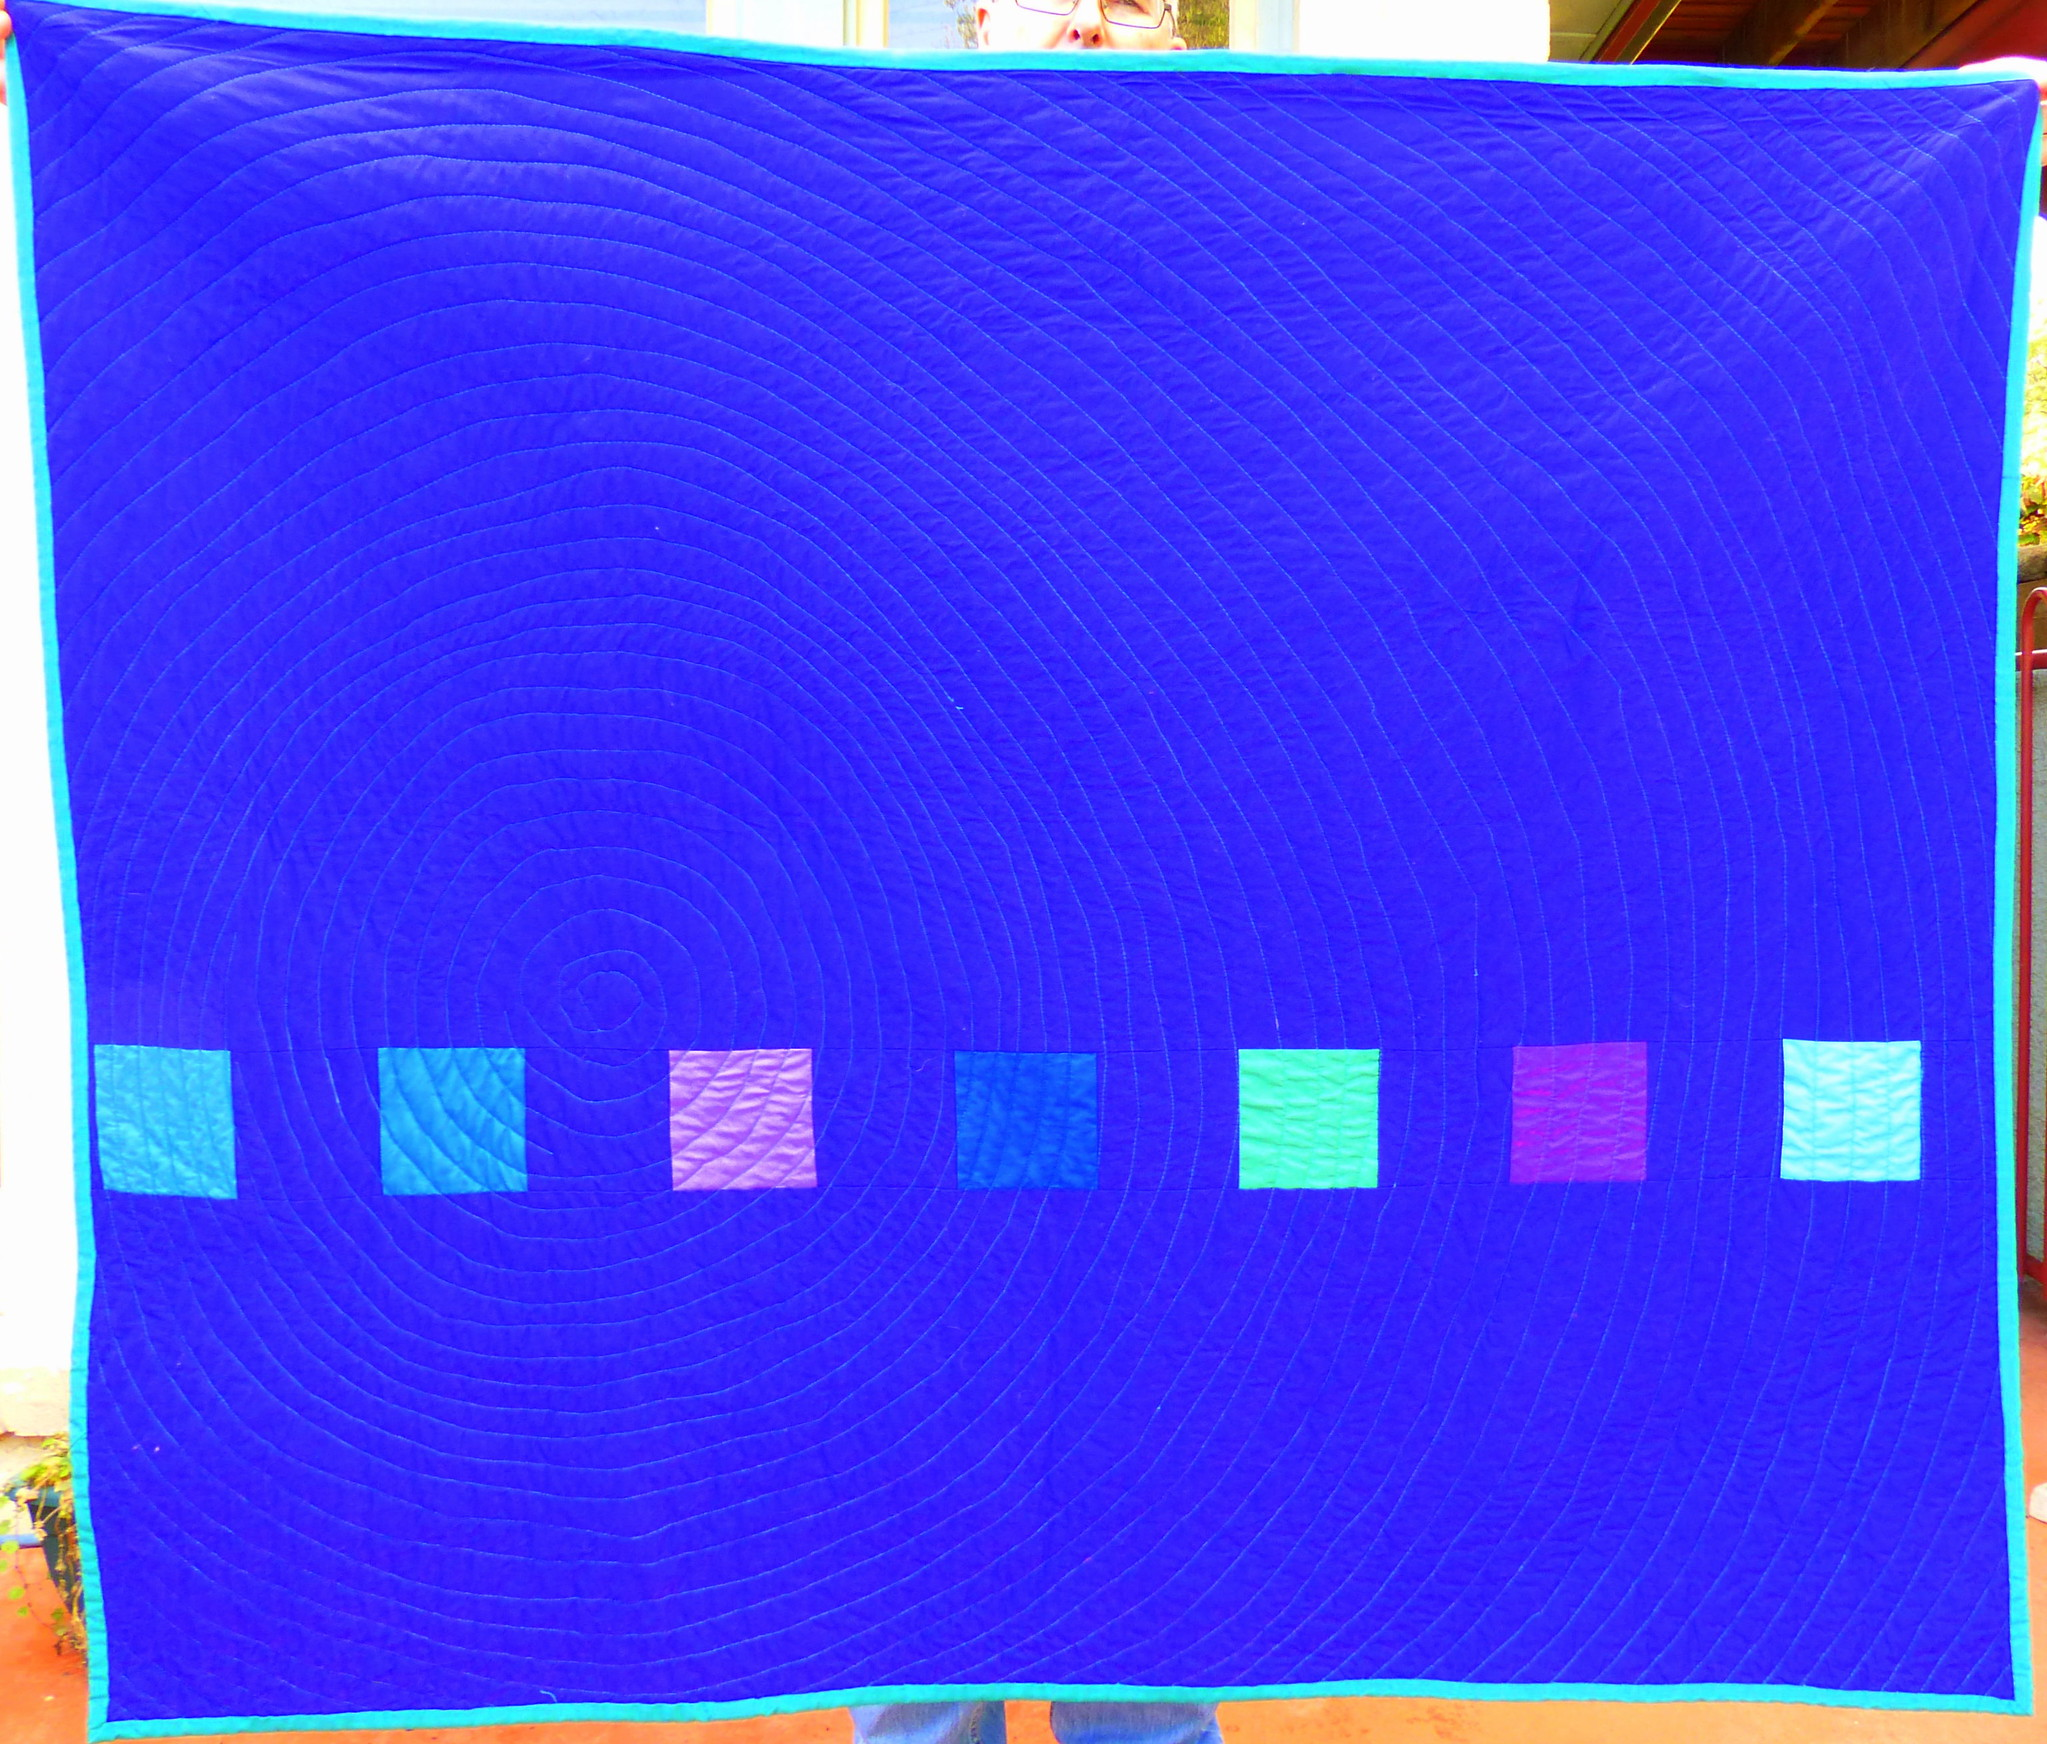 Verso of the Completed Equilateral Triangle Quilt